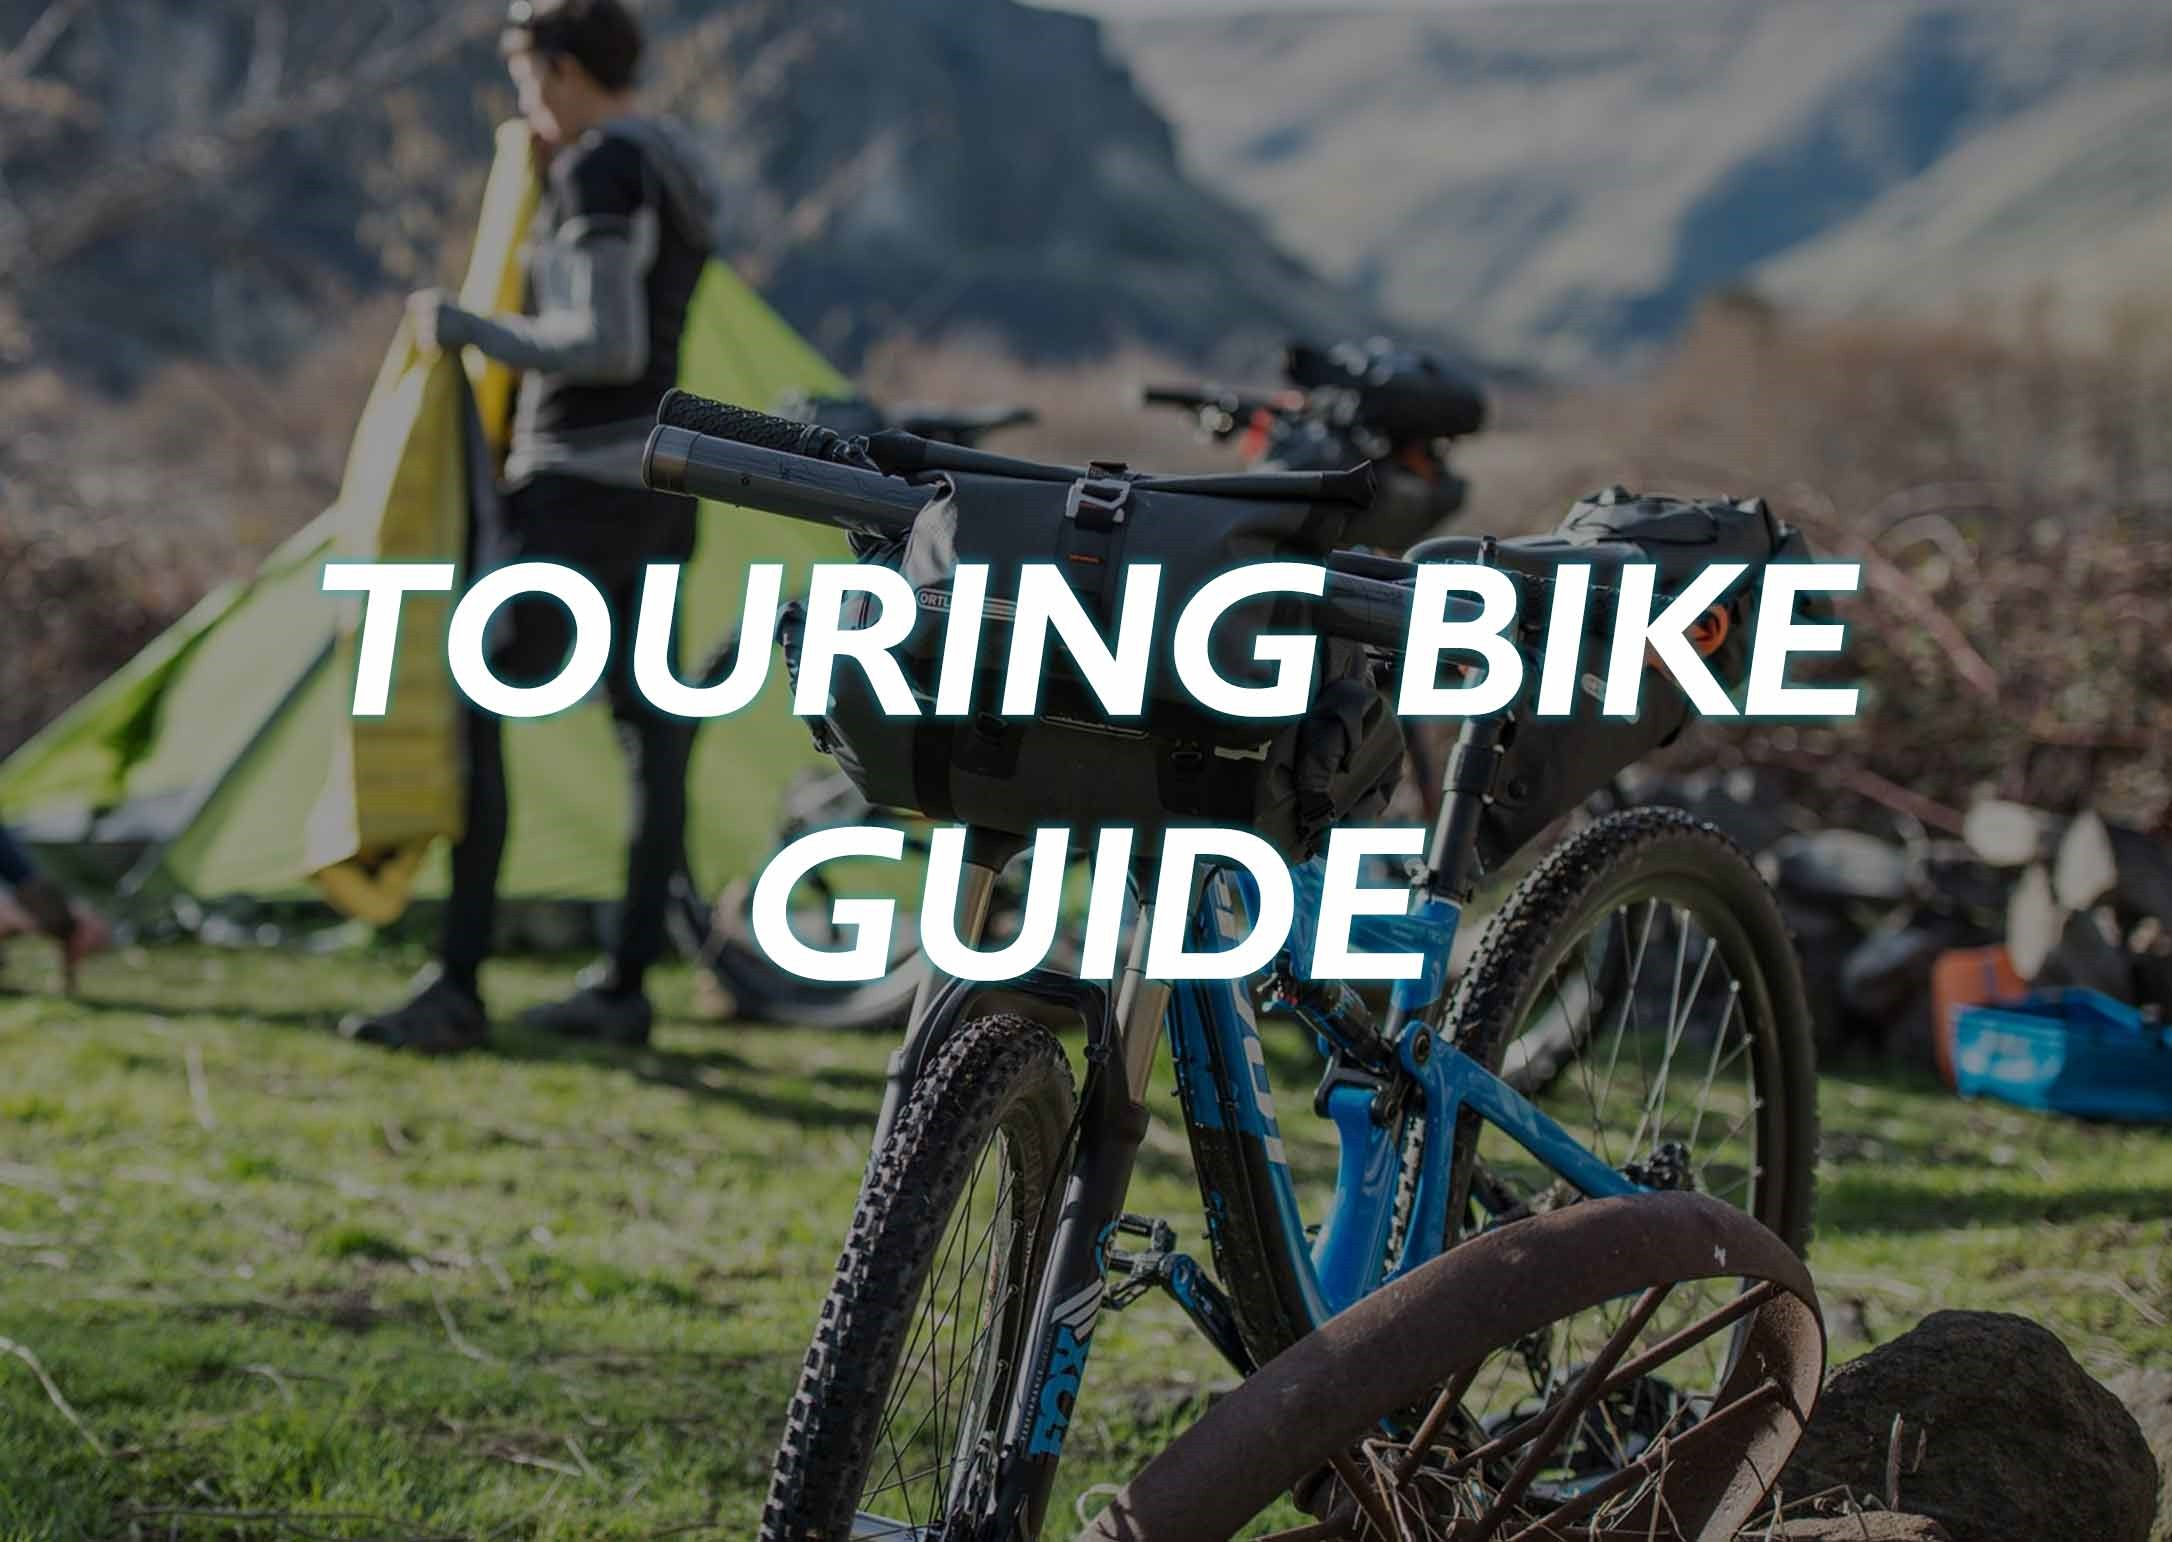 touring-bike-guide-tile